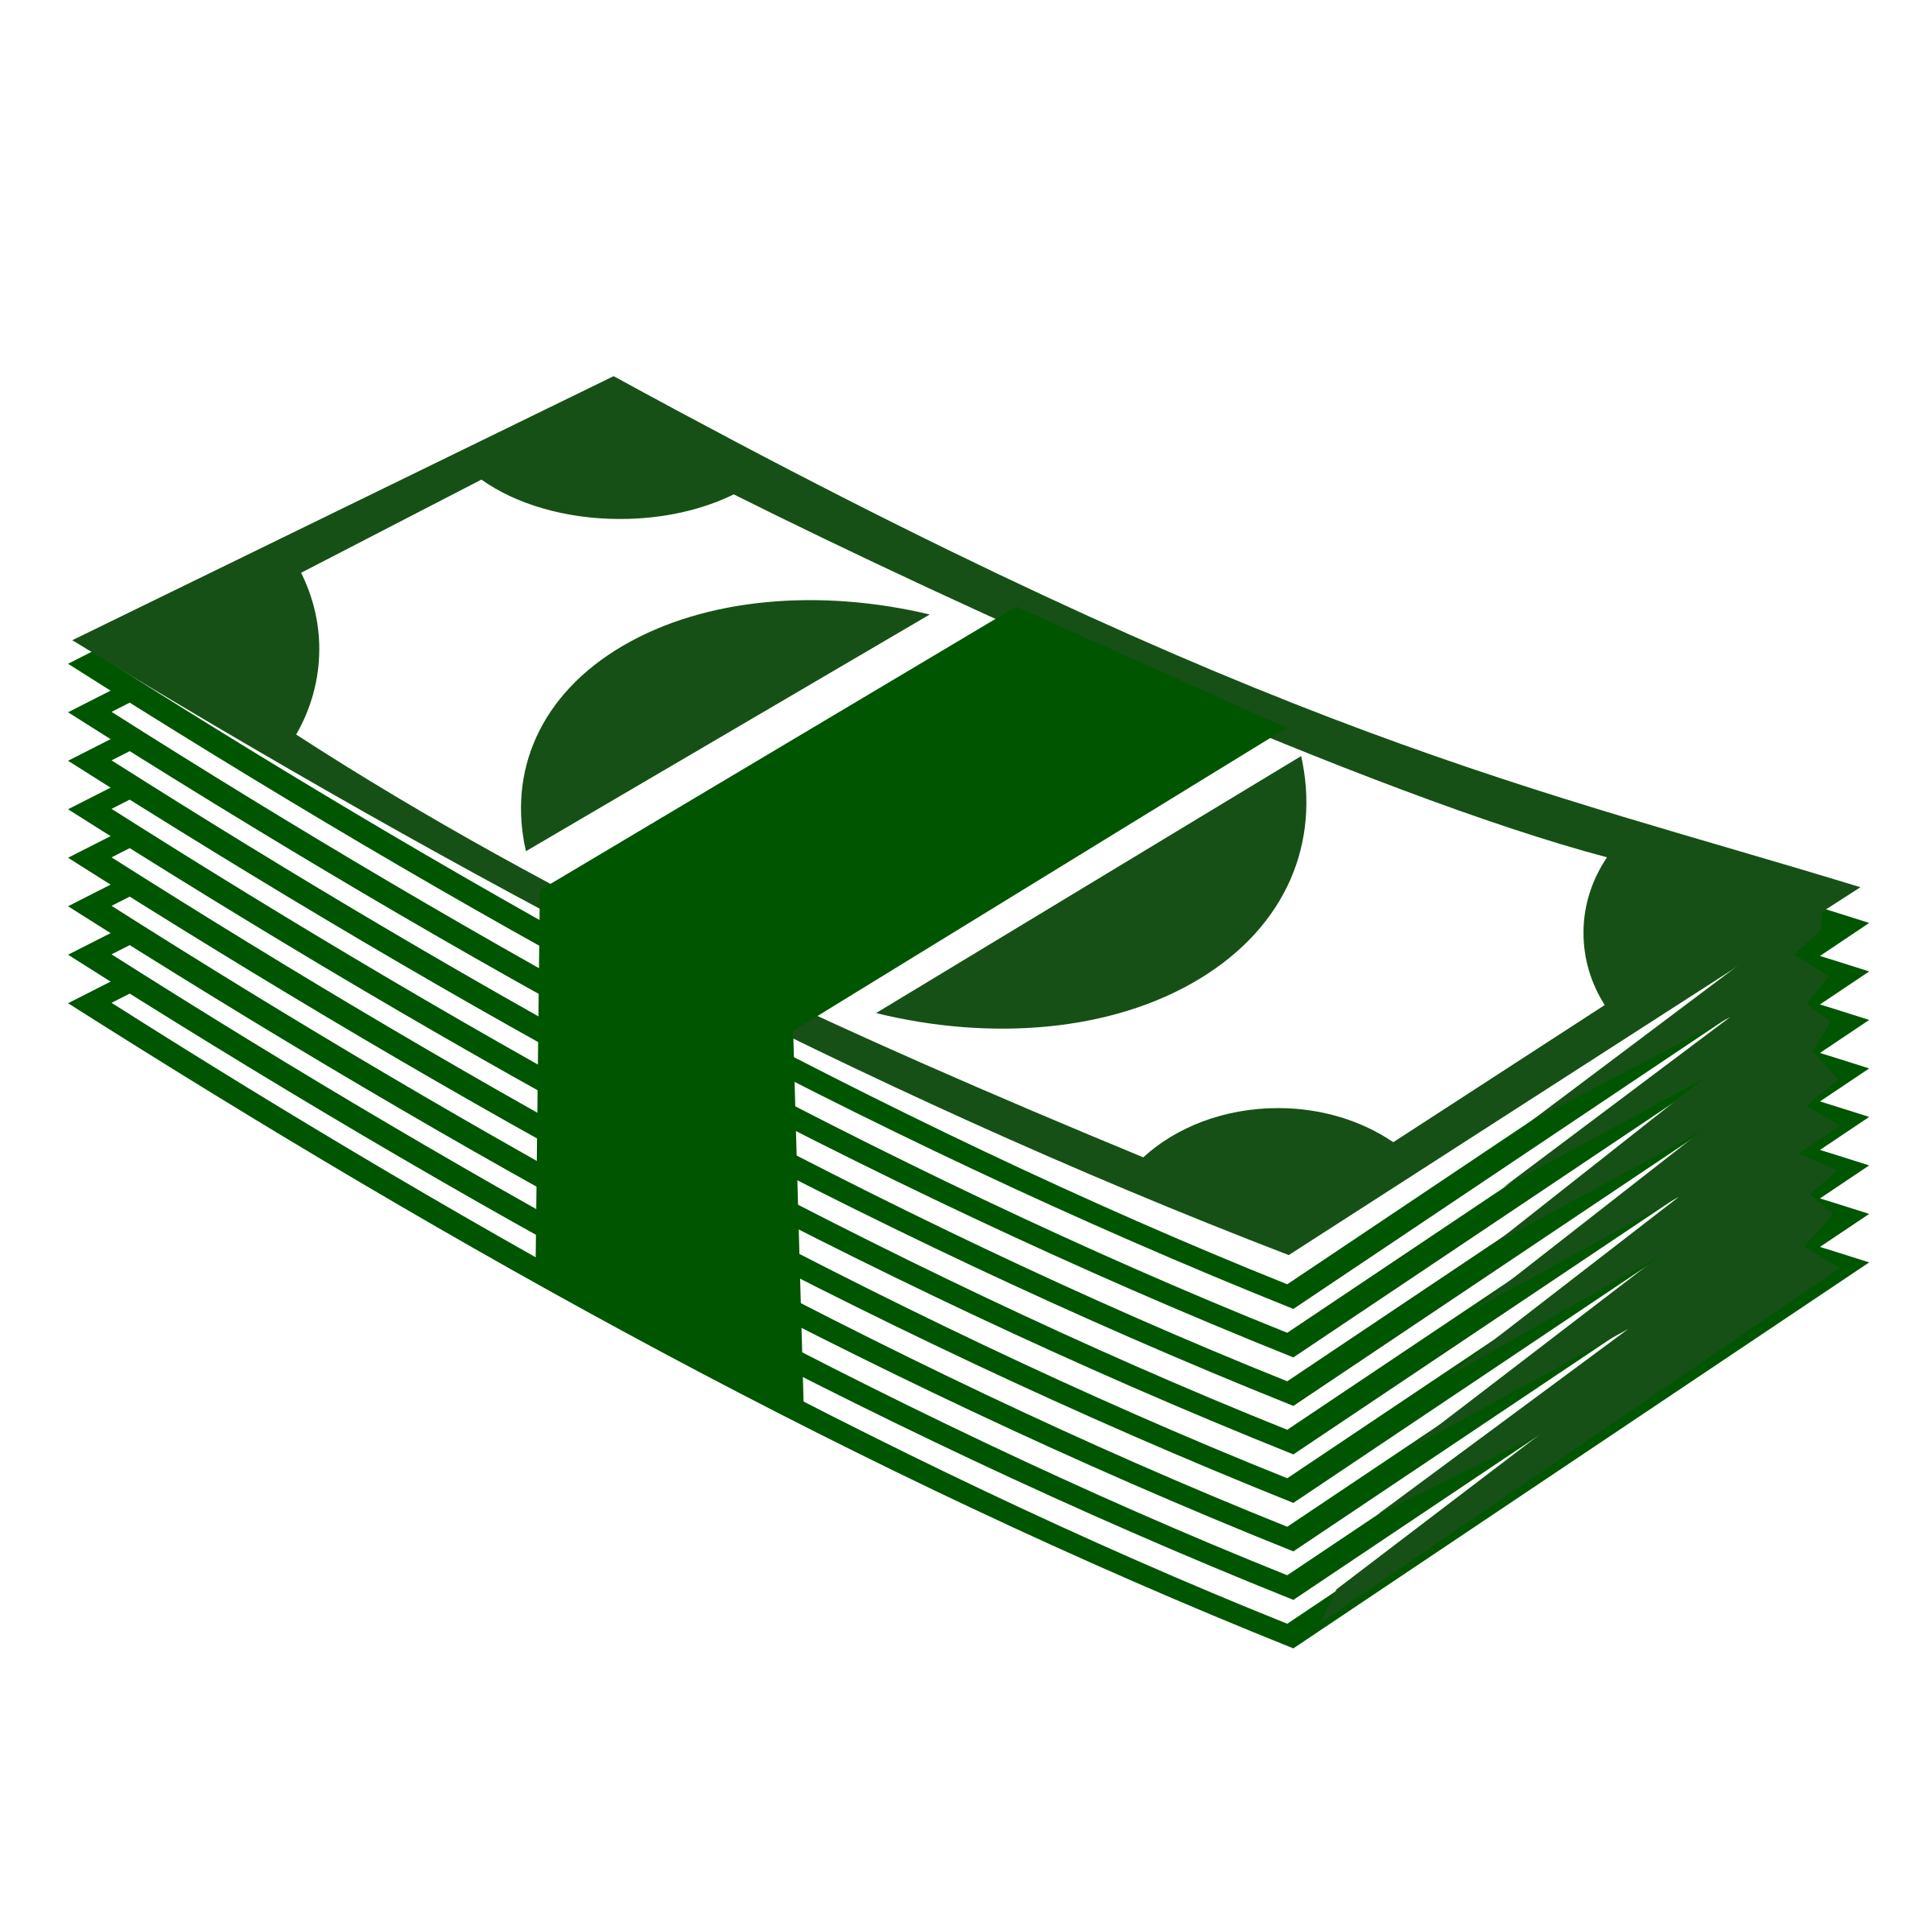 Money clipart green and white picture black and white download 28+ Collection of Cash Clipart Png | High quality, free cliparts ... picture black and white download